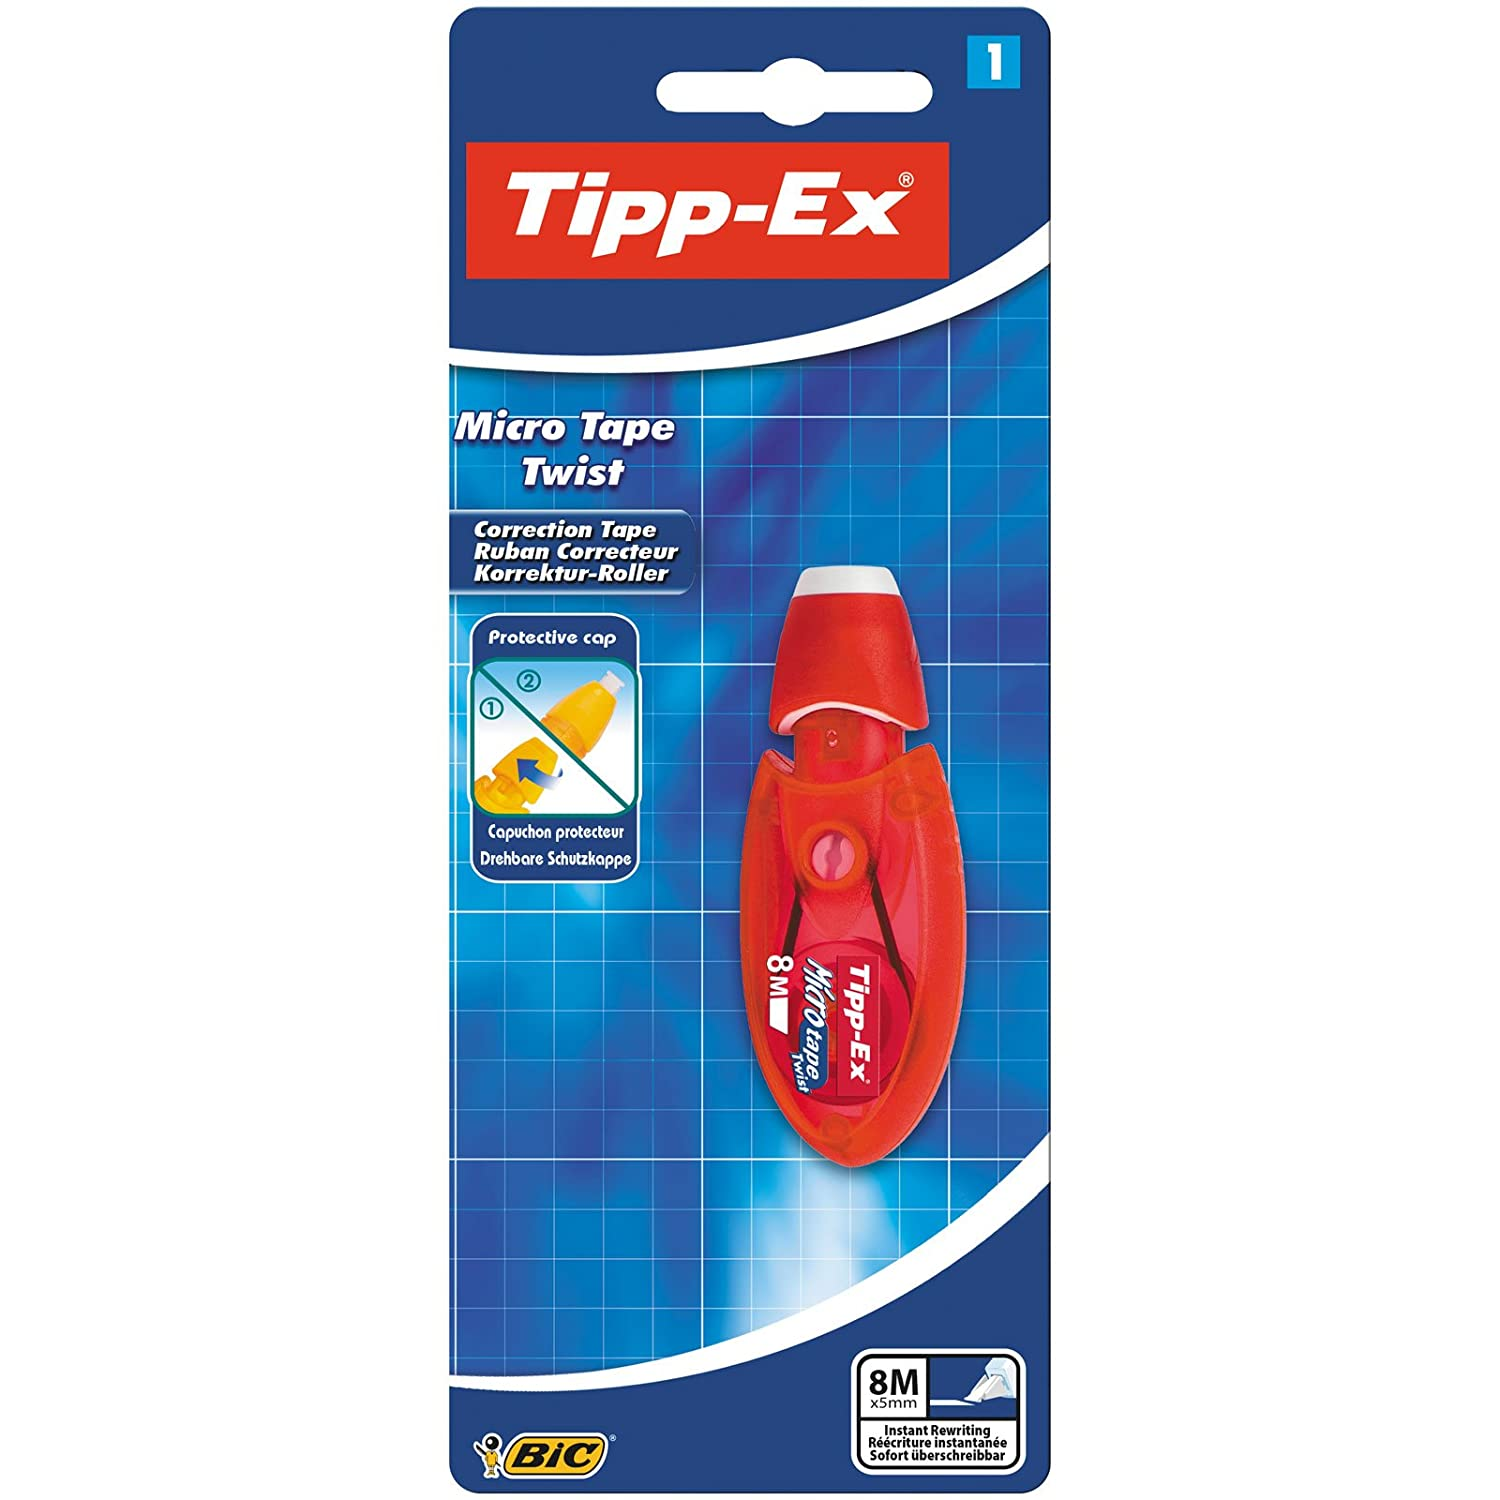 Tipp-Ex Micro Tape Twist Correction Tape Pink or Blue Case Pack of 1